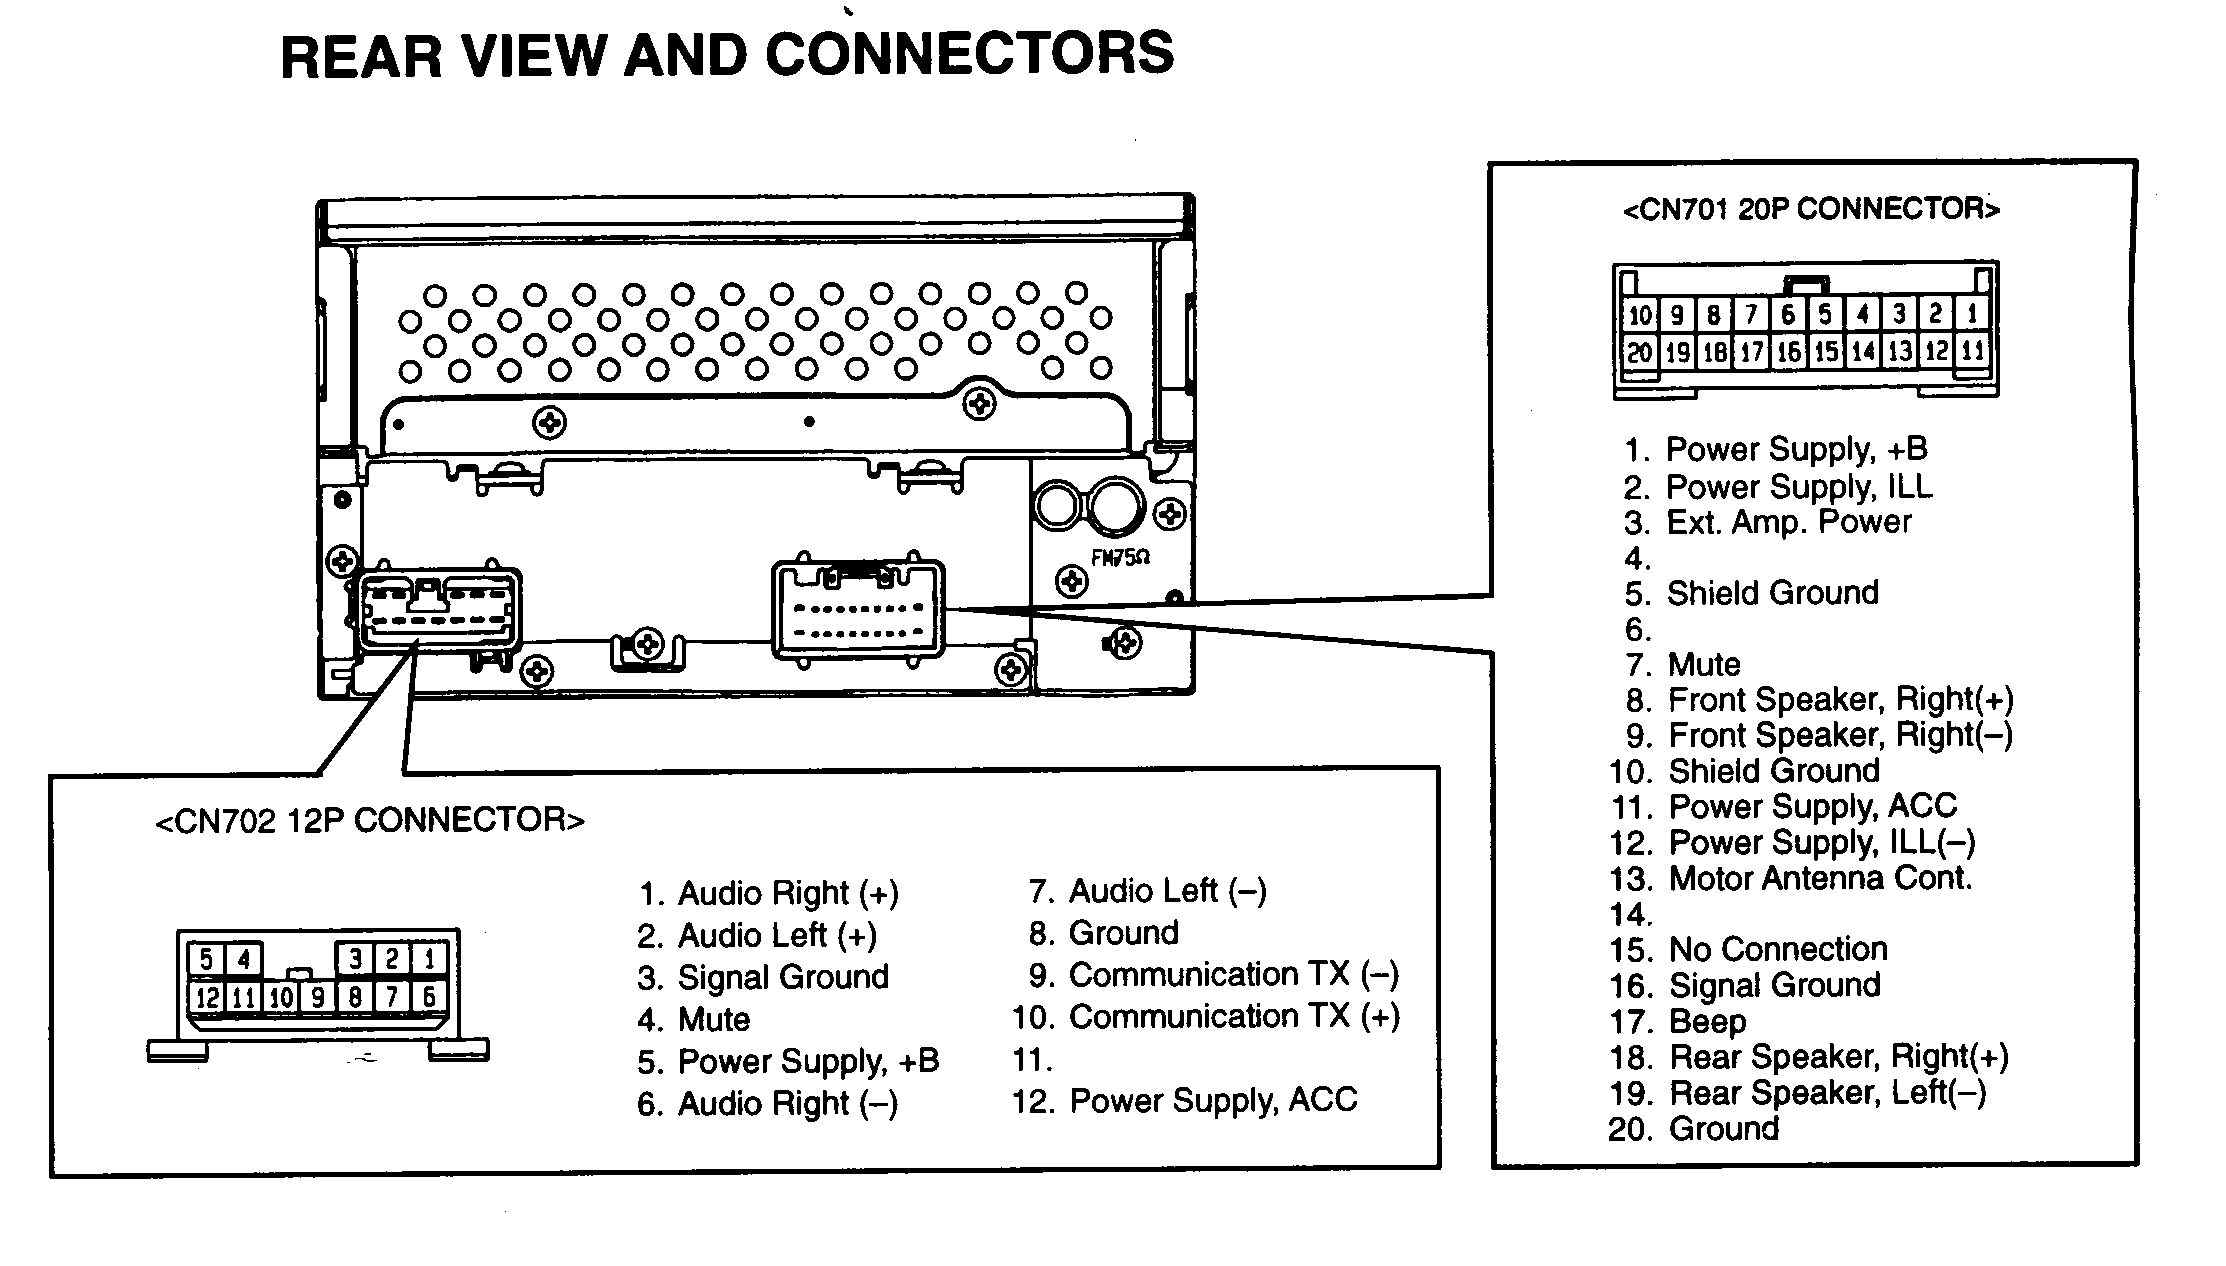 Car Stereo Wiring Diagrams Great Installation Of Diagram Rover 25 Help Wire Color Code And Rh Carstereoremoval Com Wc Wc2